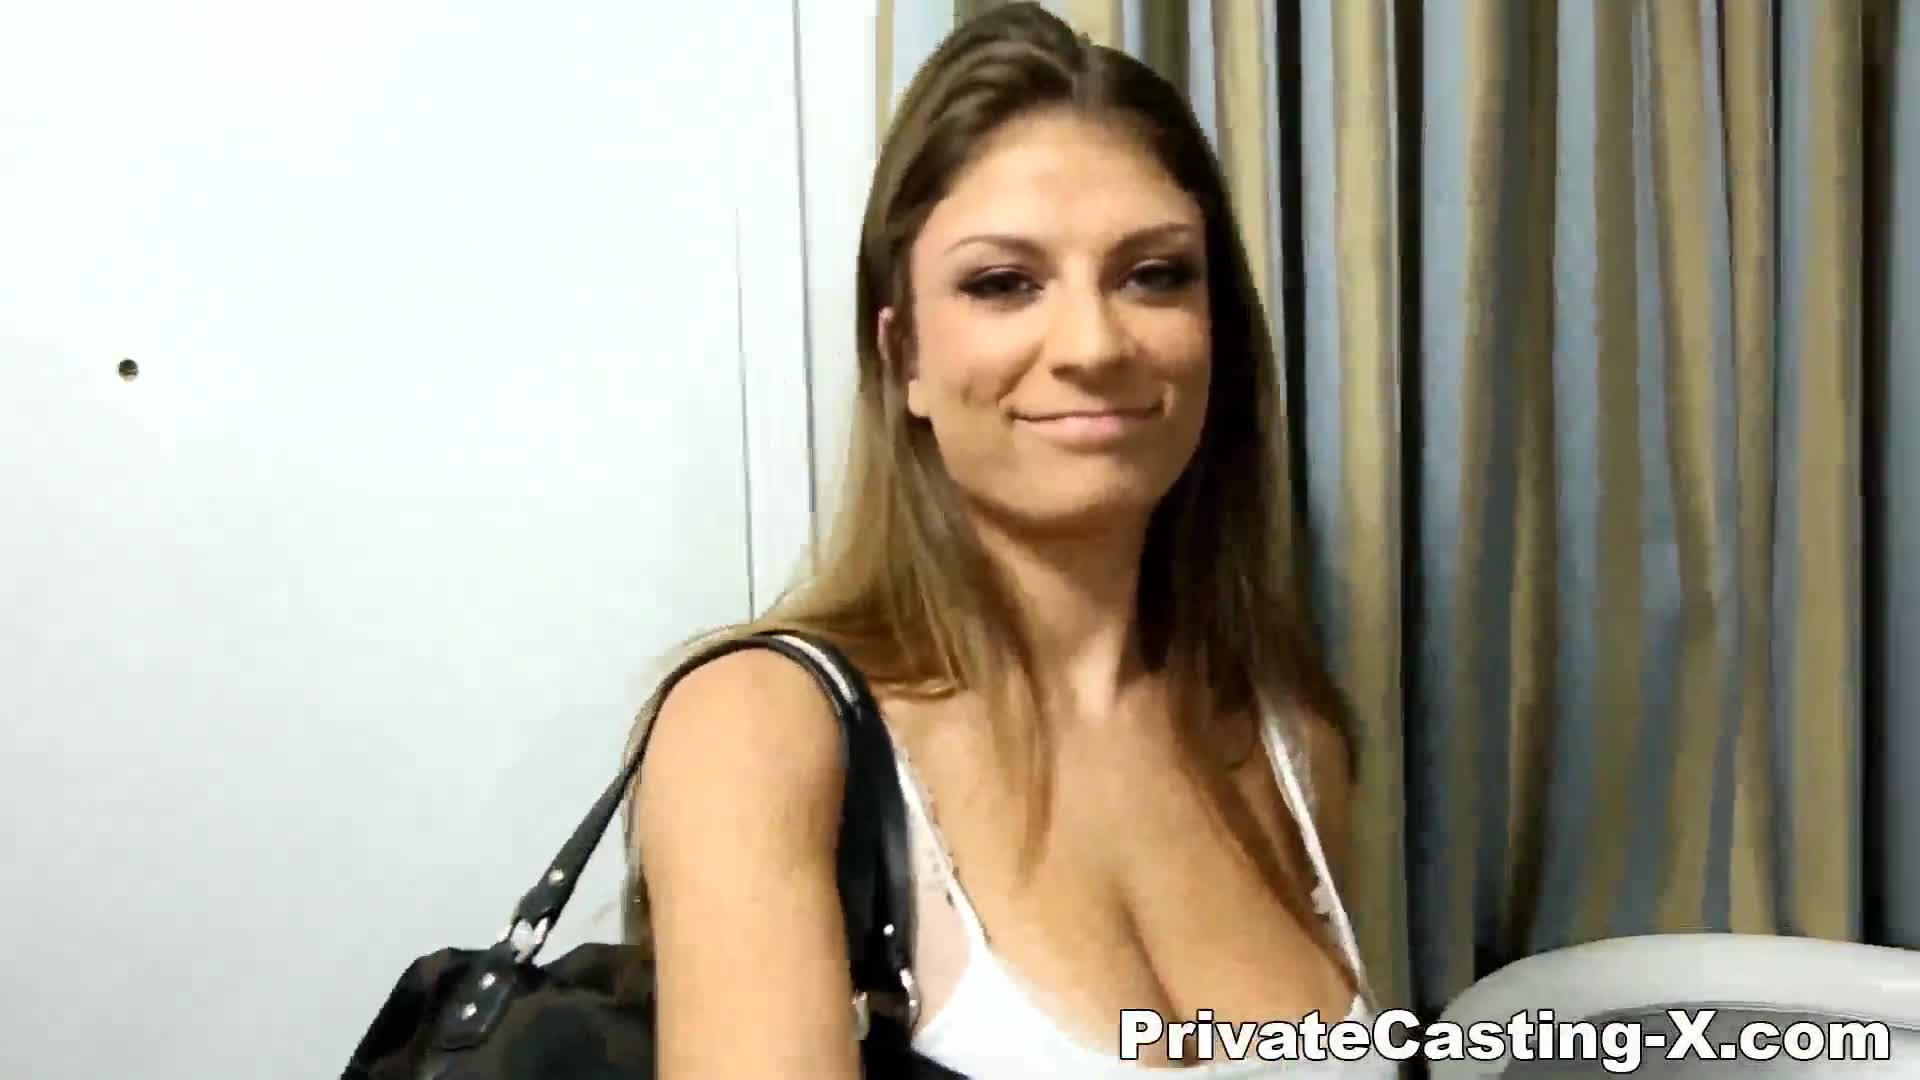 Private castingx fucking a future country star